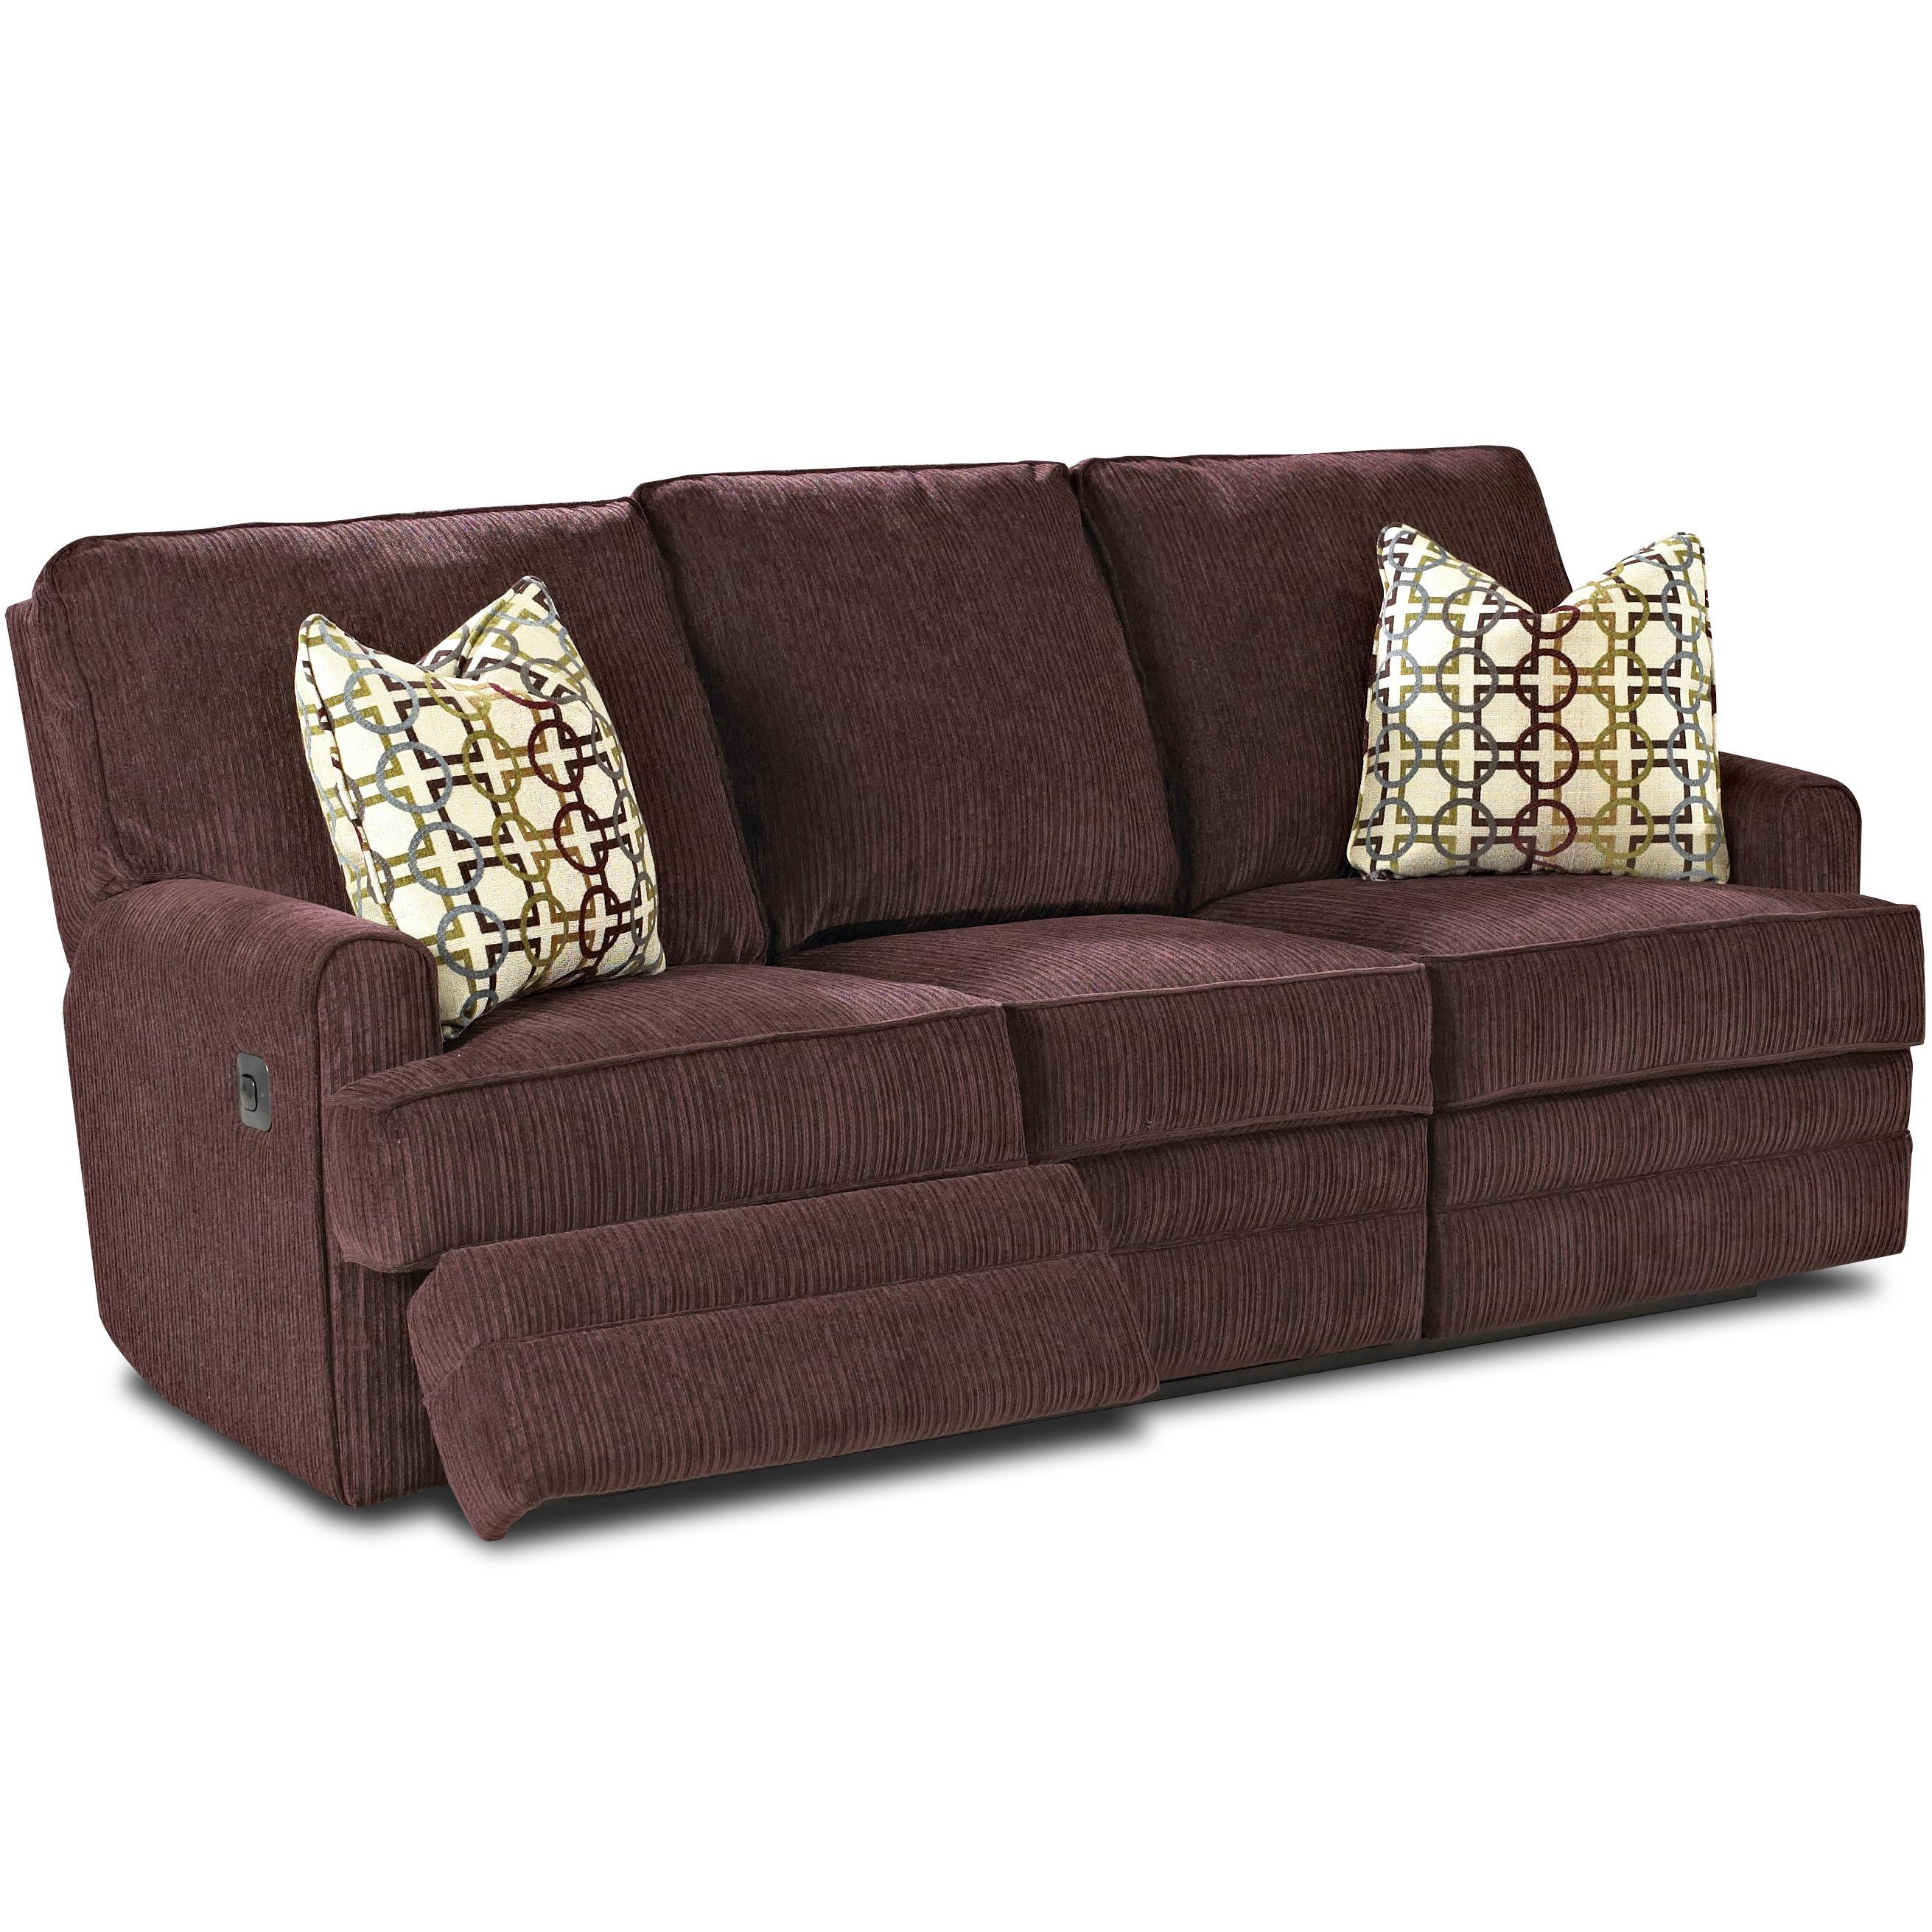 Callahan casual reclining sofa with track arms and pillows for Casual couch